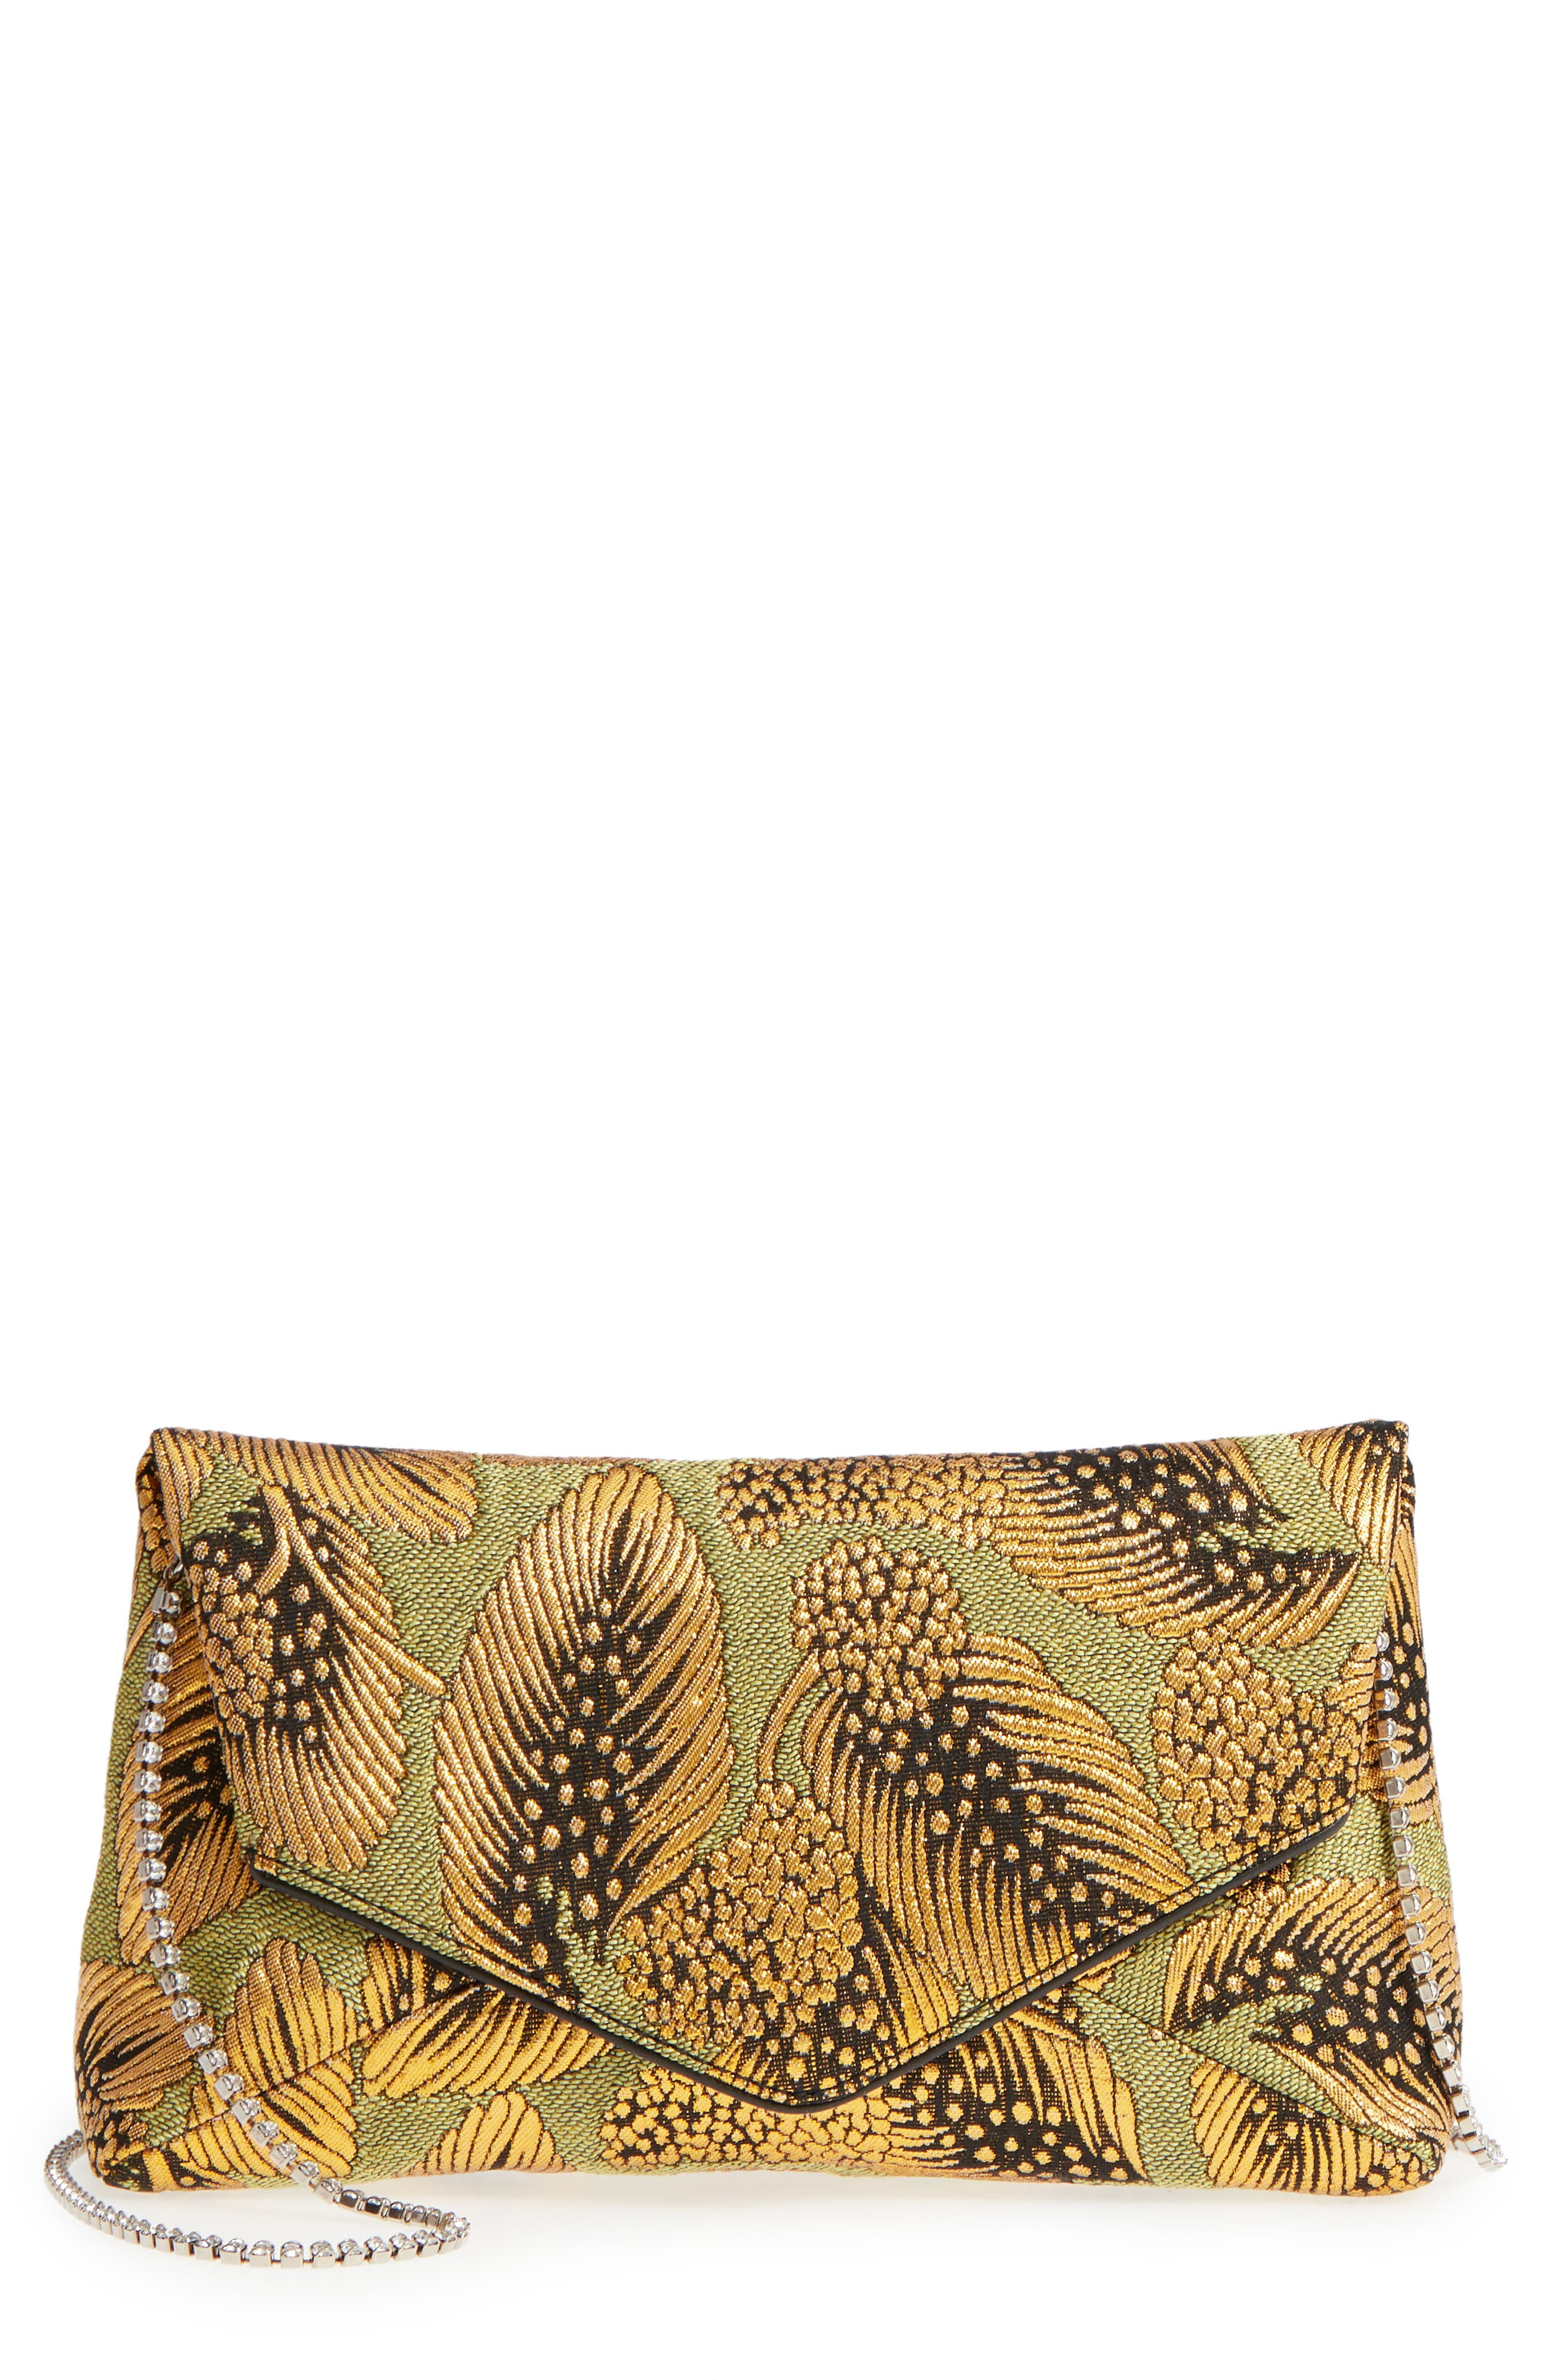 Small Metallic Feather Envelope Clutch,                             Main thumbnail 1, color,                             Gold